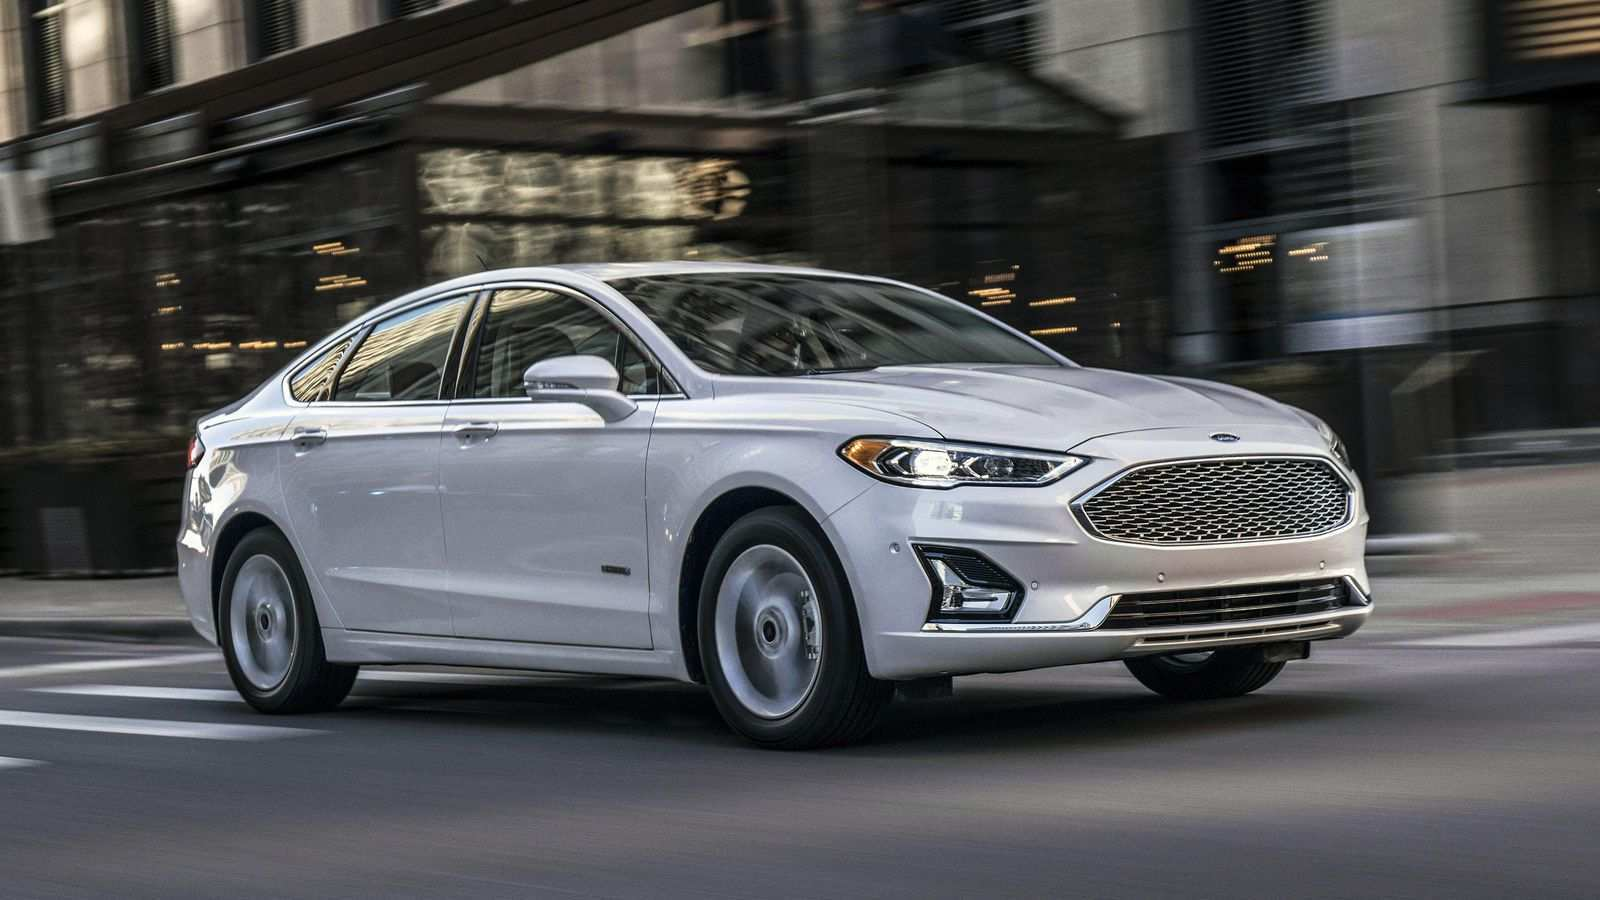 95 A 2020 Ford Fusion Price Design And Review